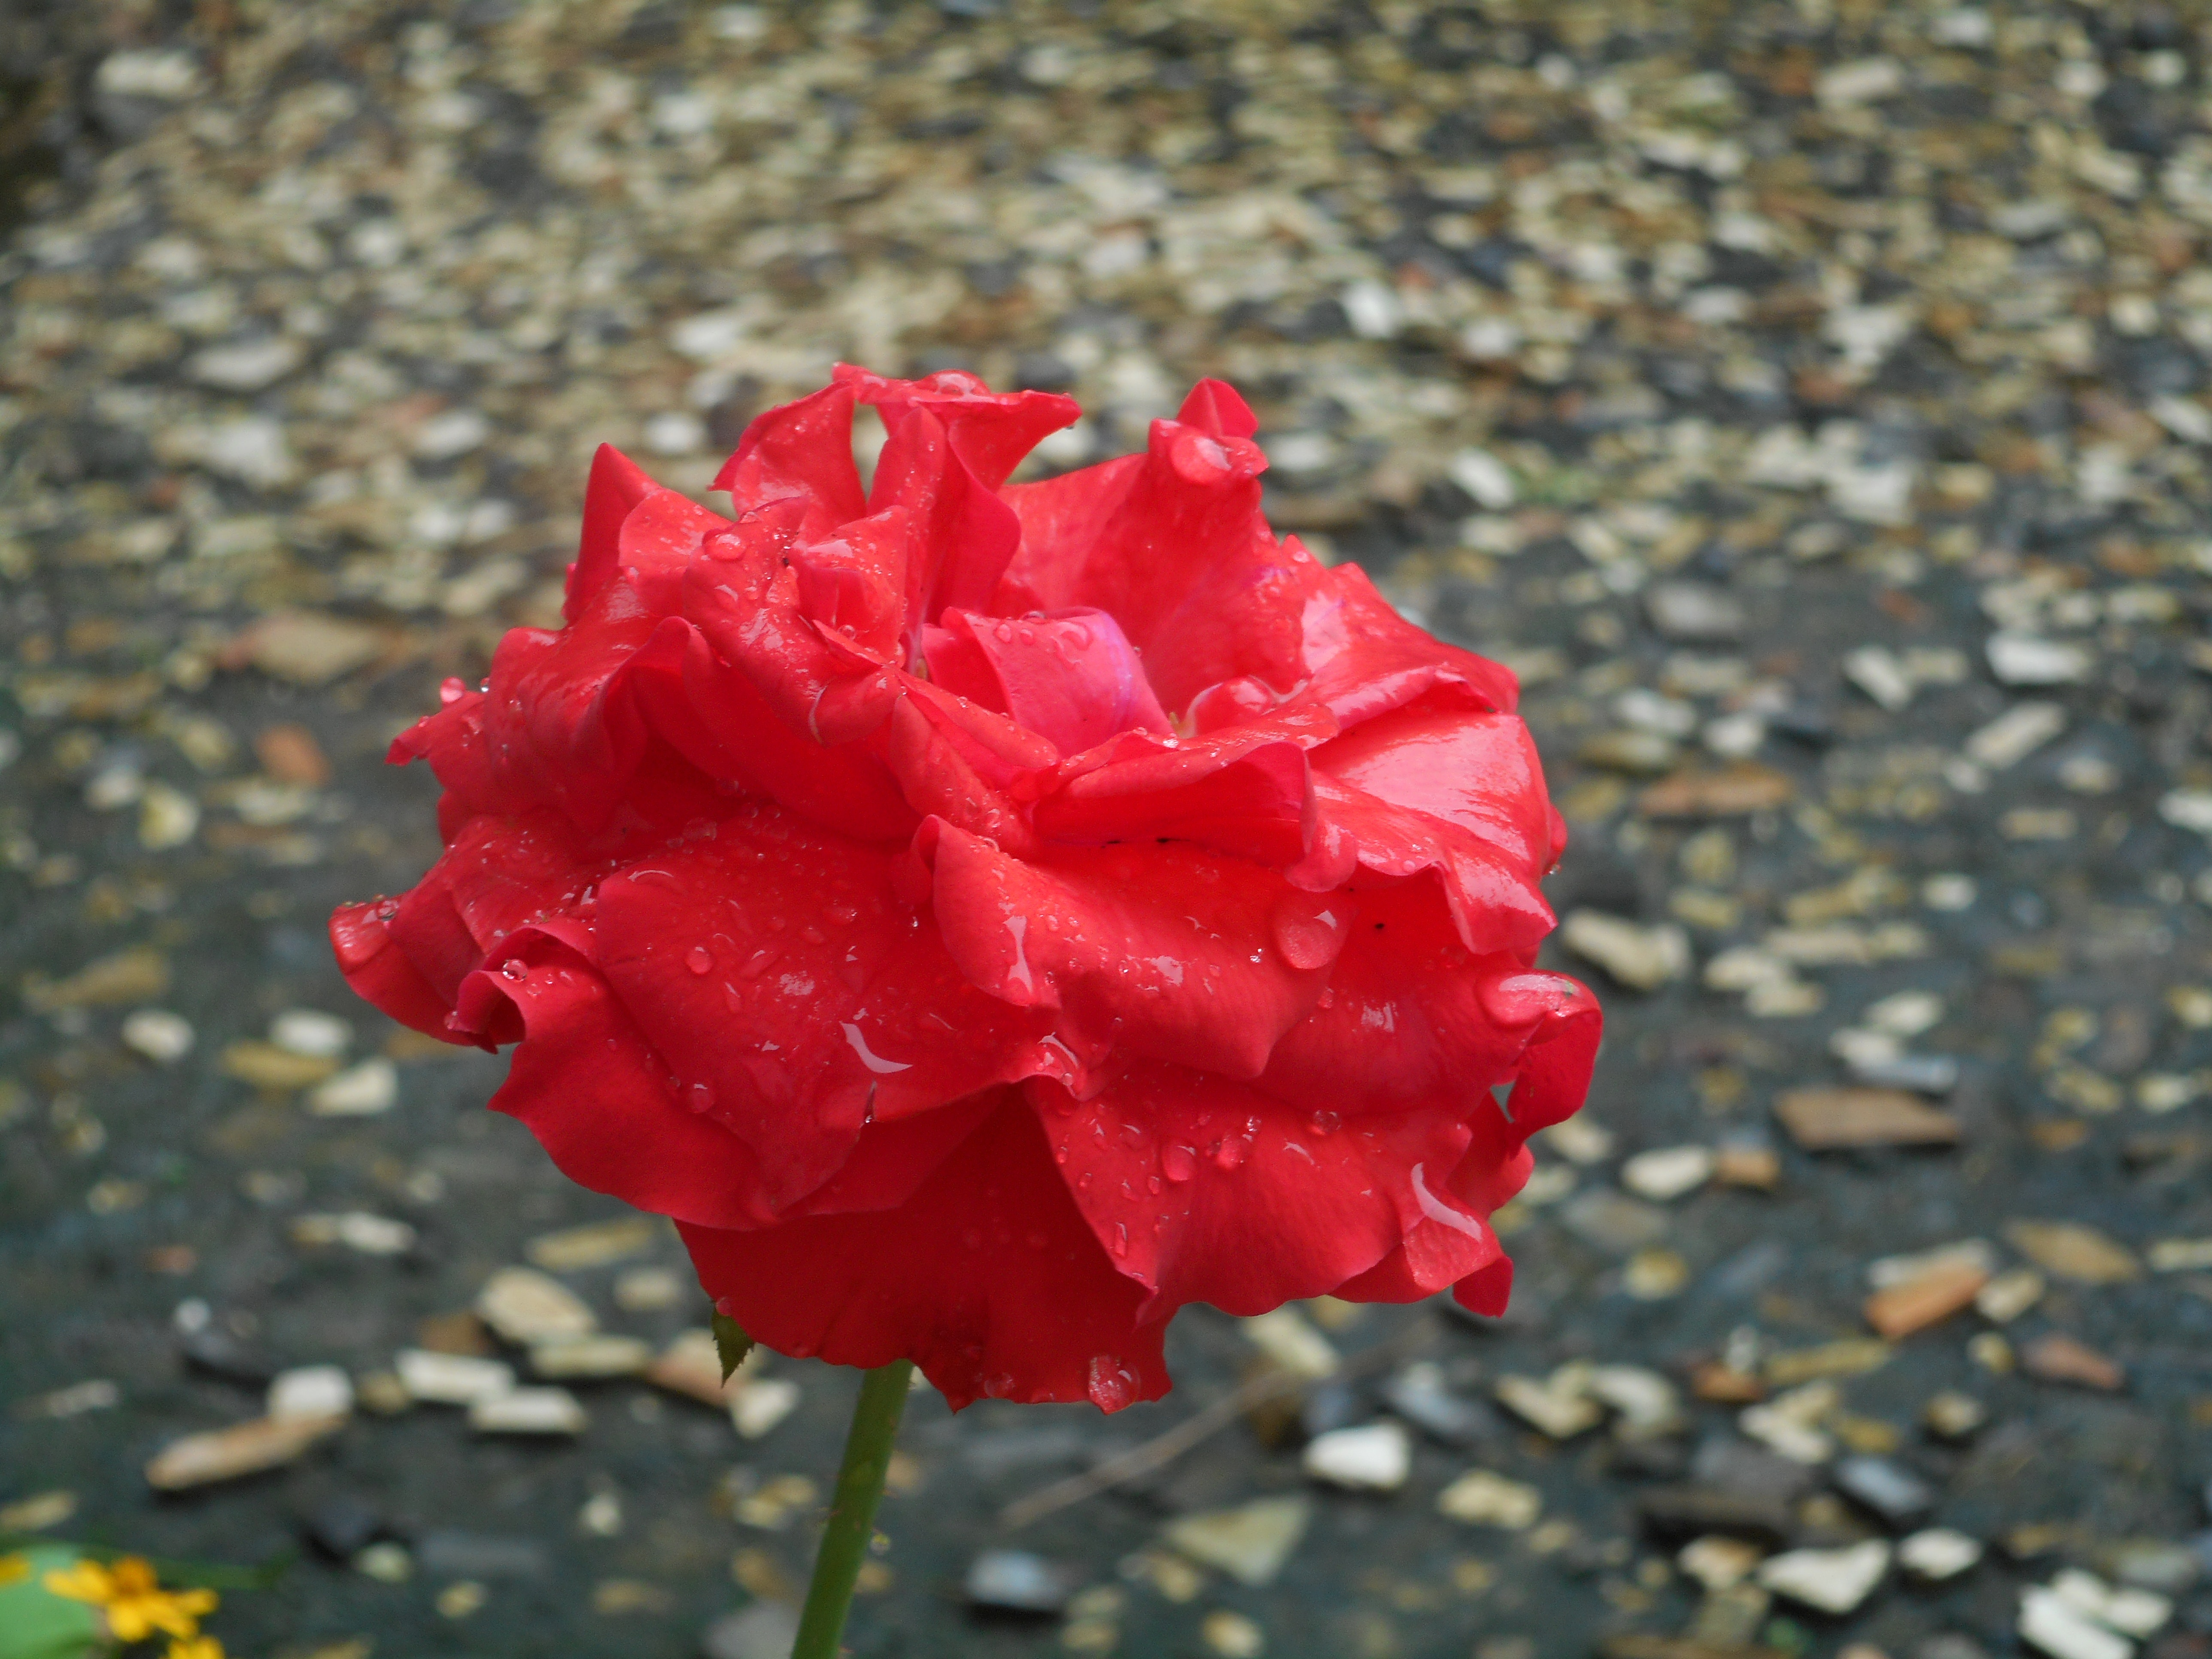 Free stock photo of beautiful flowers red flowers red roses free download izmirmasajfo Images